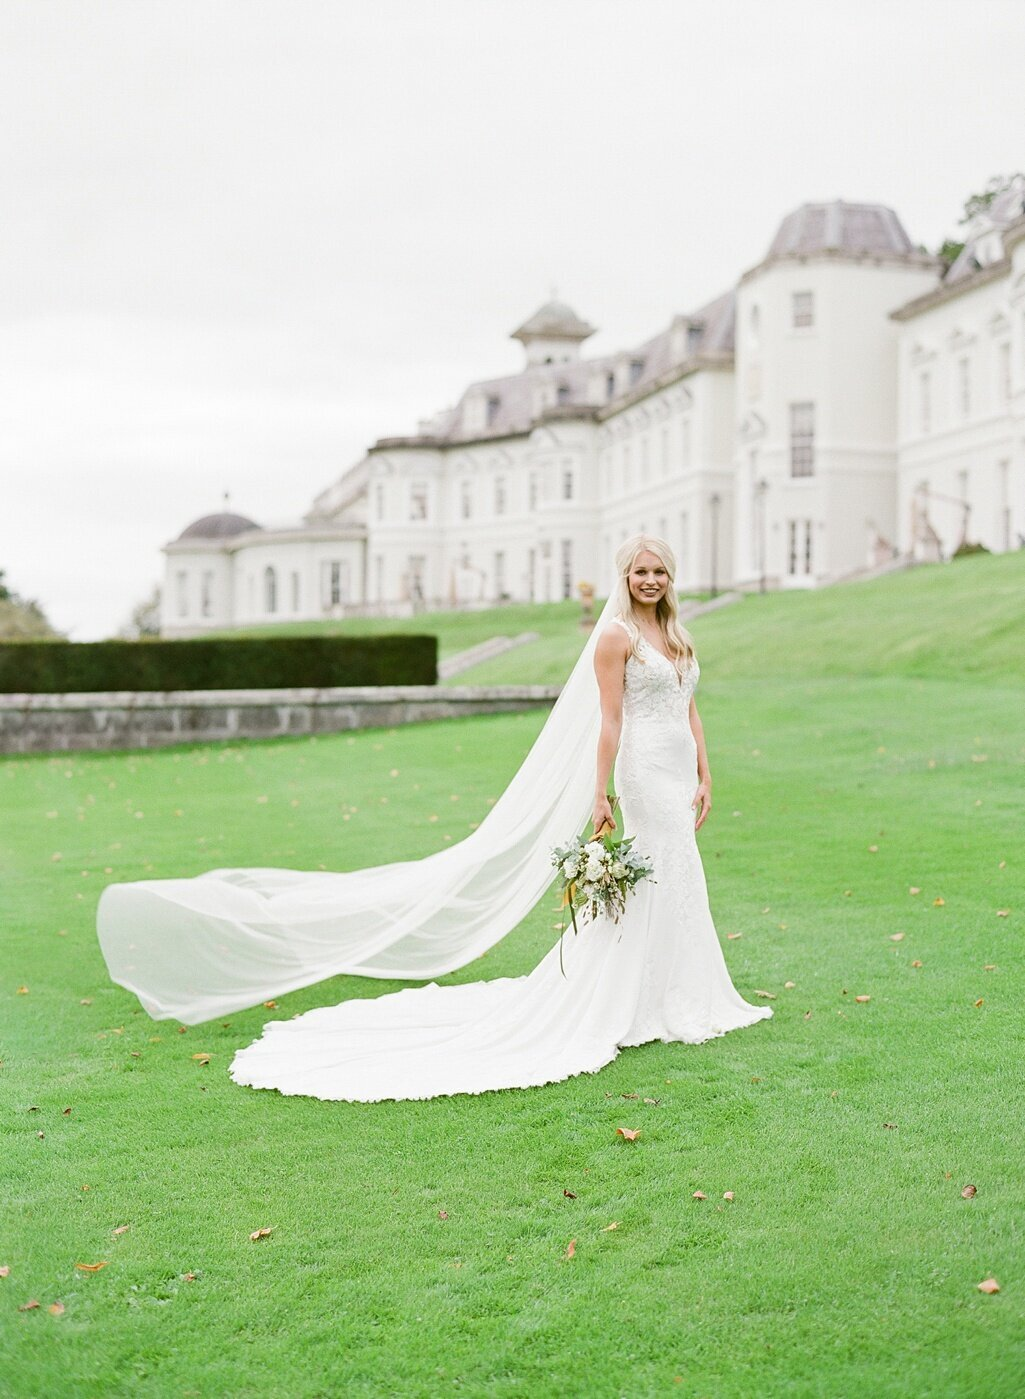 Jessie-Barksdale-Photography_K-Club-Ireland-Destination-Wedding-Photographer_0001